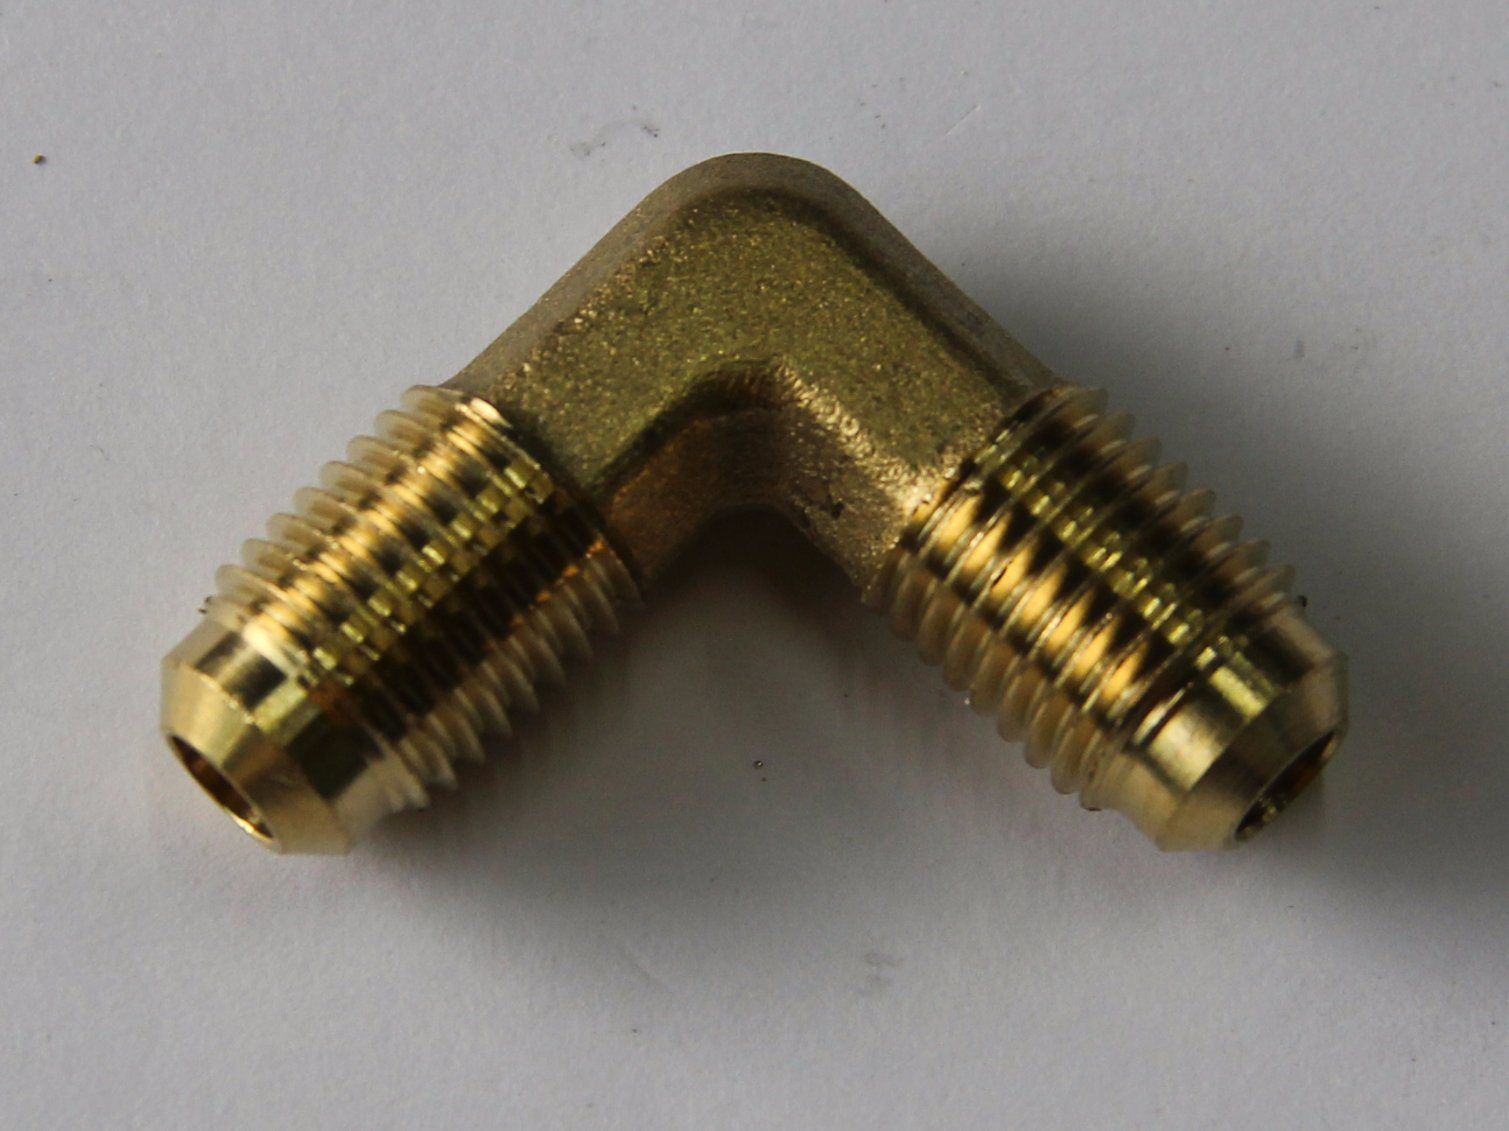 Brass Union Elbow for Air Conditioning and Refrigeration